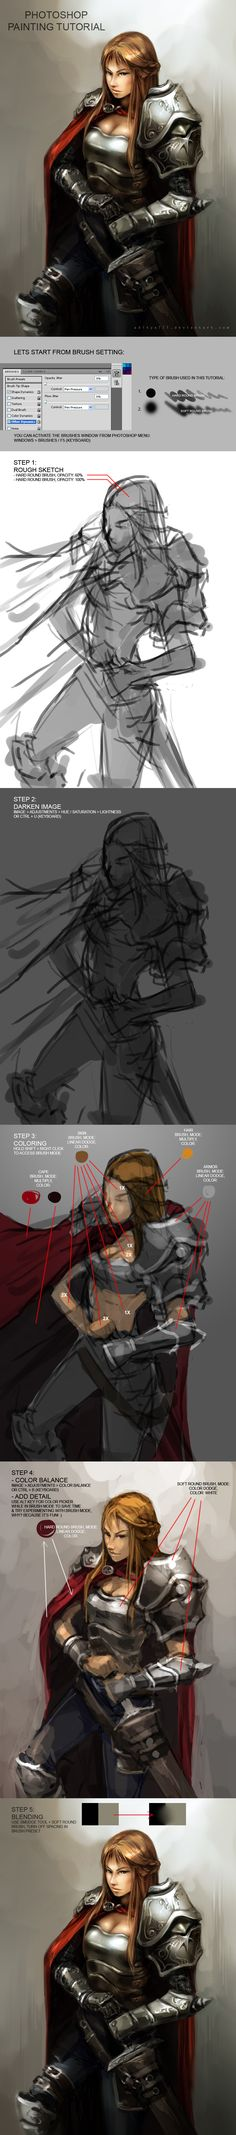 Photoshop paint tutorial.  By aditya777. Source: deviantART